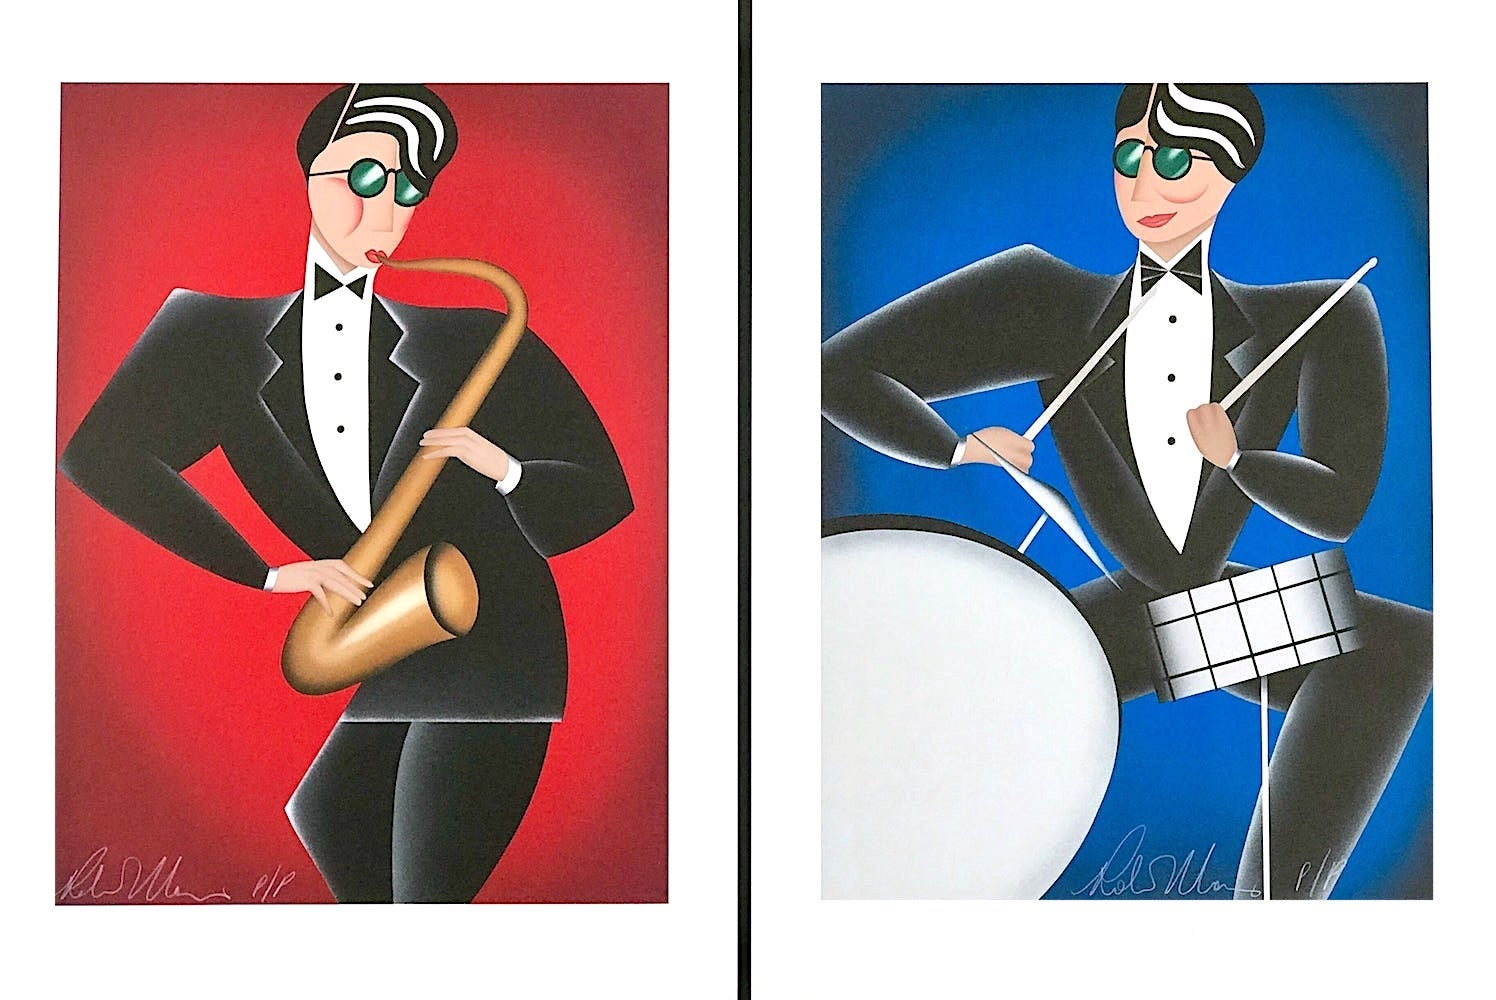 RED HOT/COOL BLUE, 2 Signed Lithographs, Musical Portrait, Saxophone Drums, Jazz